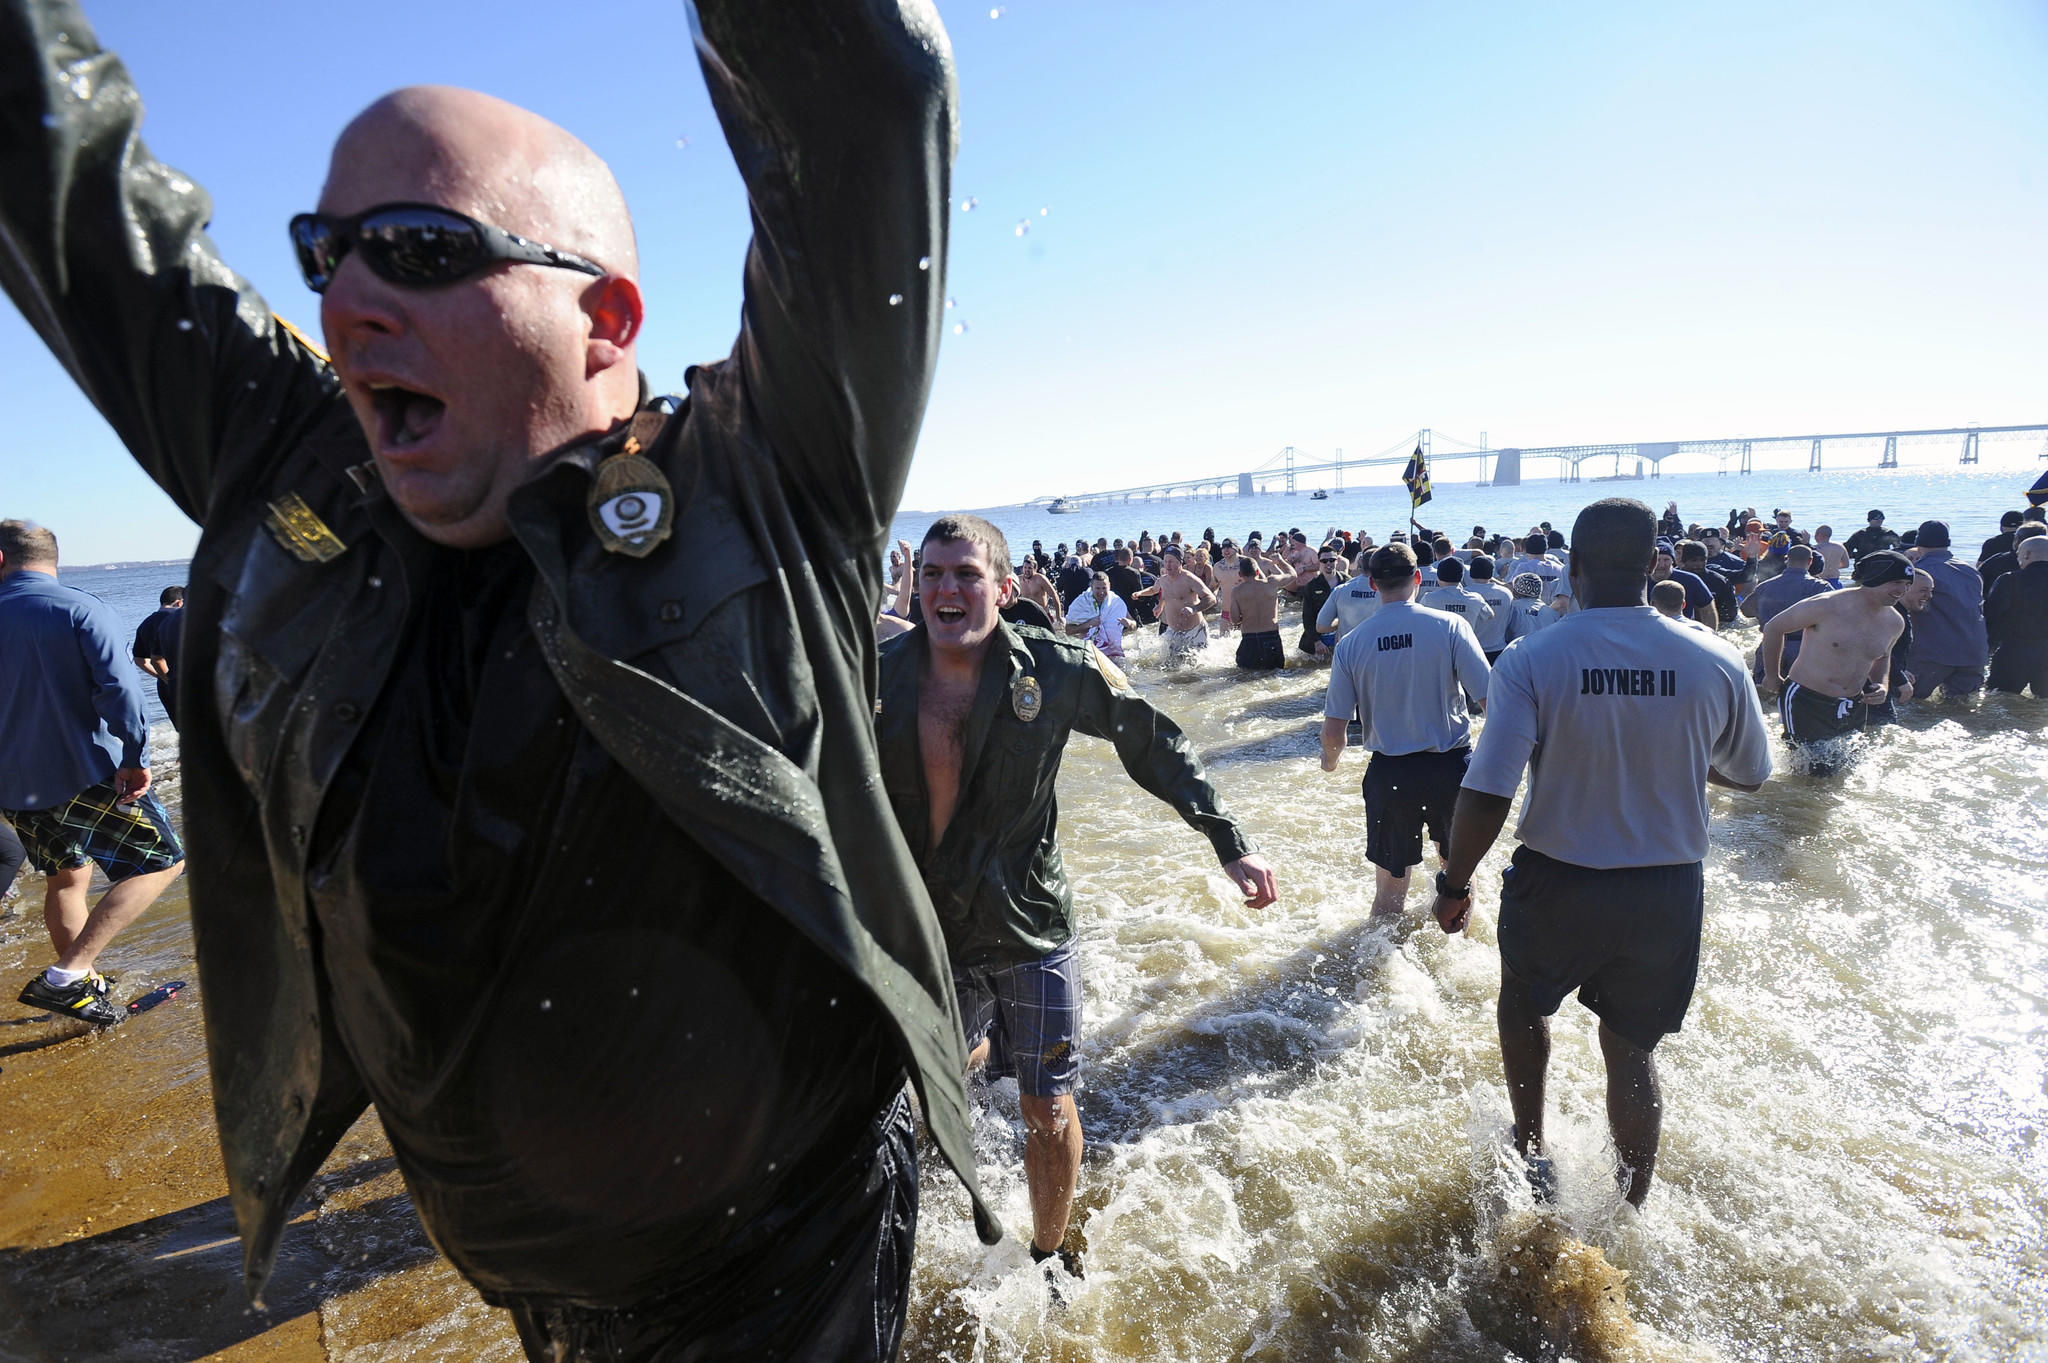 The Super Plunge event beginning on Friday kicks off the Polar Bear Plunge weekend, and includes plunges for law enforcement and corporate participants. (Because of frigid conditions, the plunge was canceled on Saturday morning.)